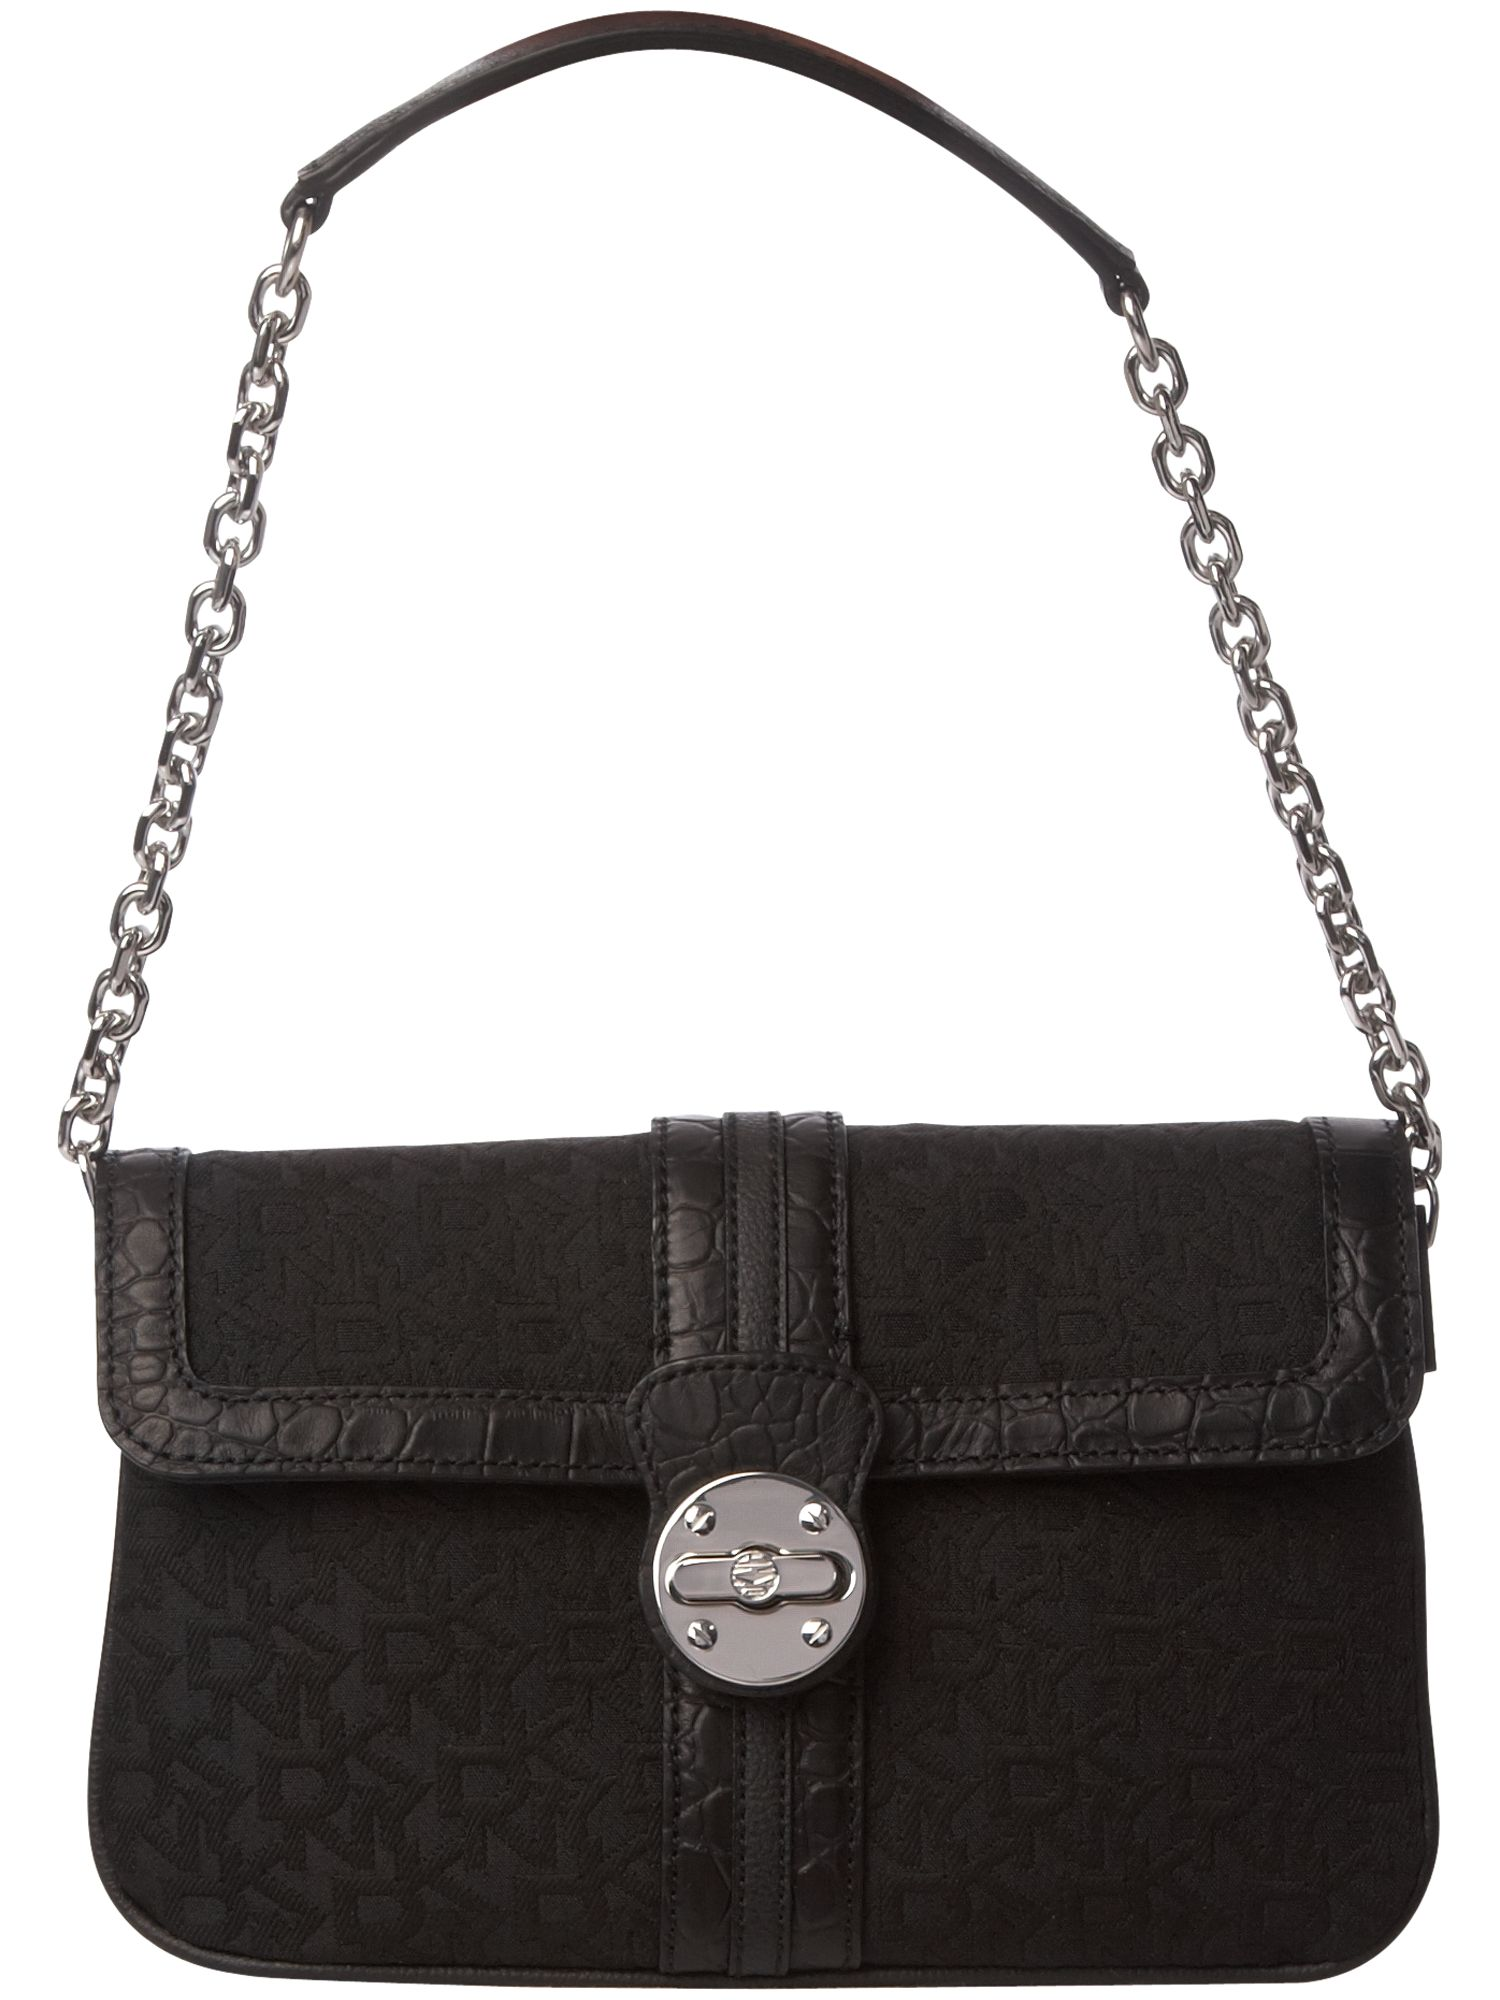 DKNY Turnlock Town and Country nylon flapover bag product image